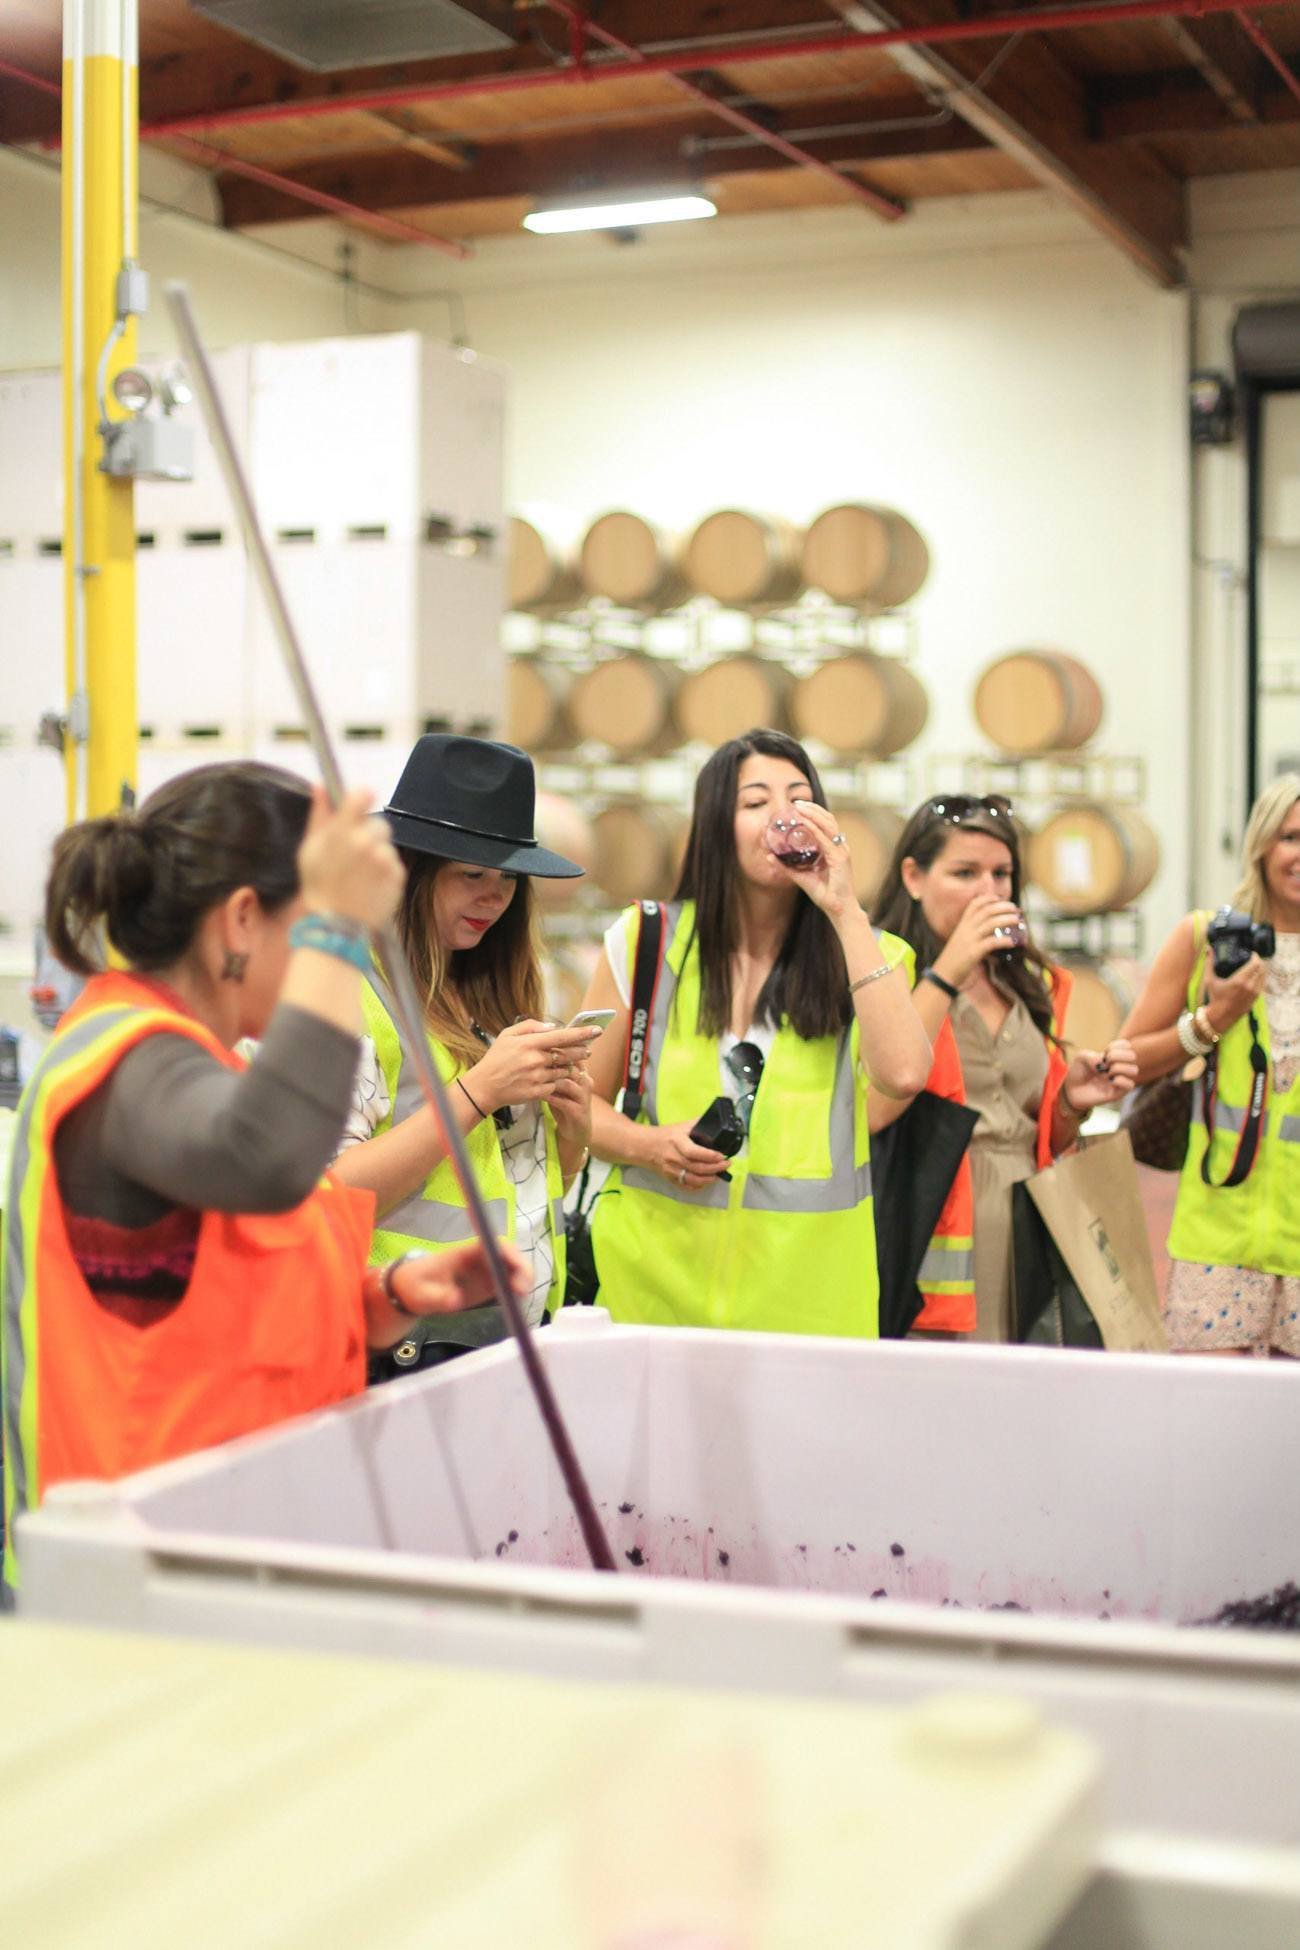 Tasting young wines at Sterling Vineyards in Napa Valley